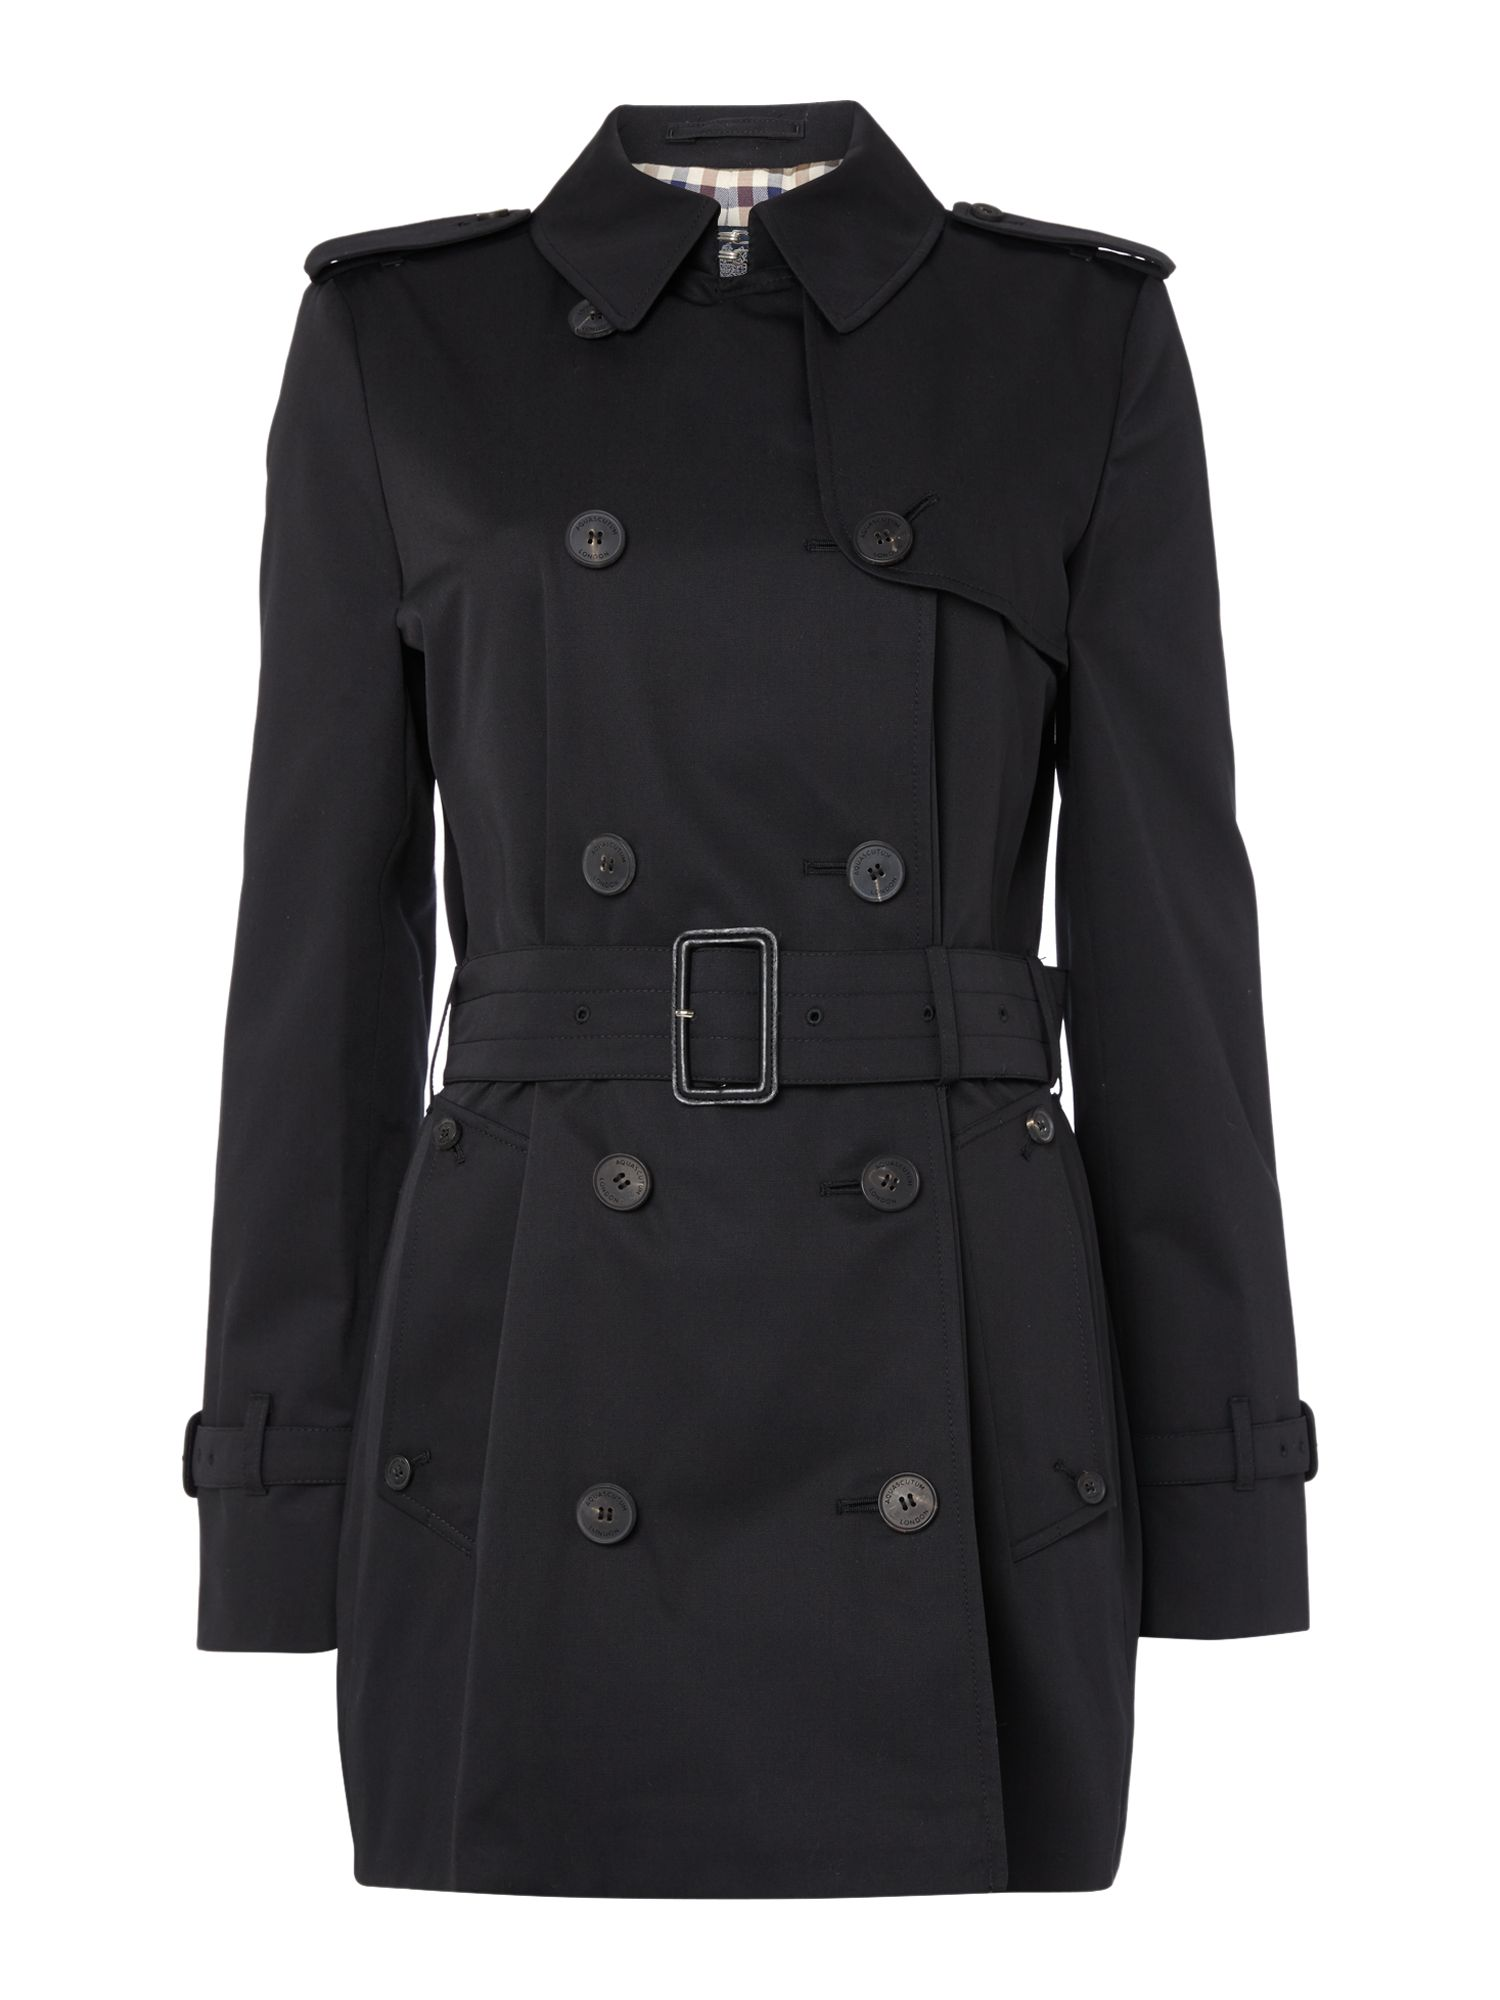 Aquascutum Jennifer Double Breasted Raincoat, Black